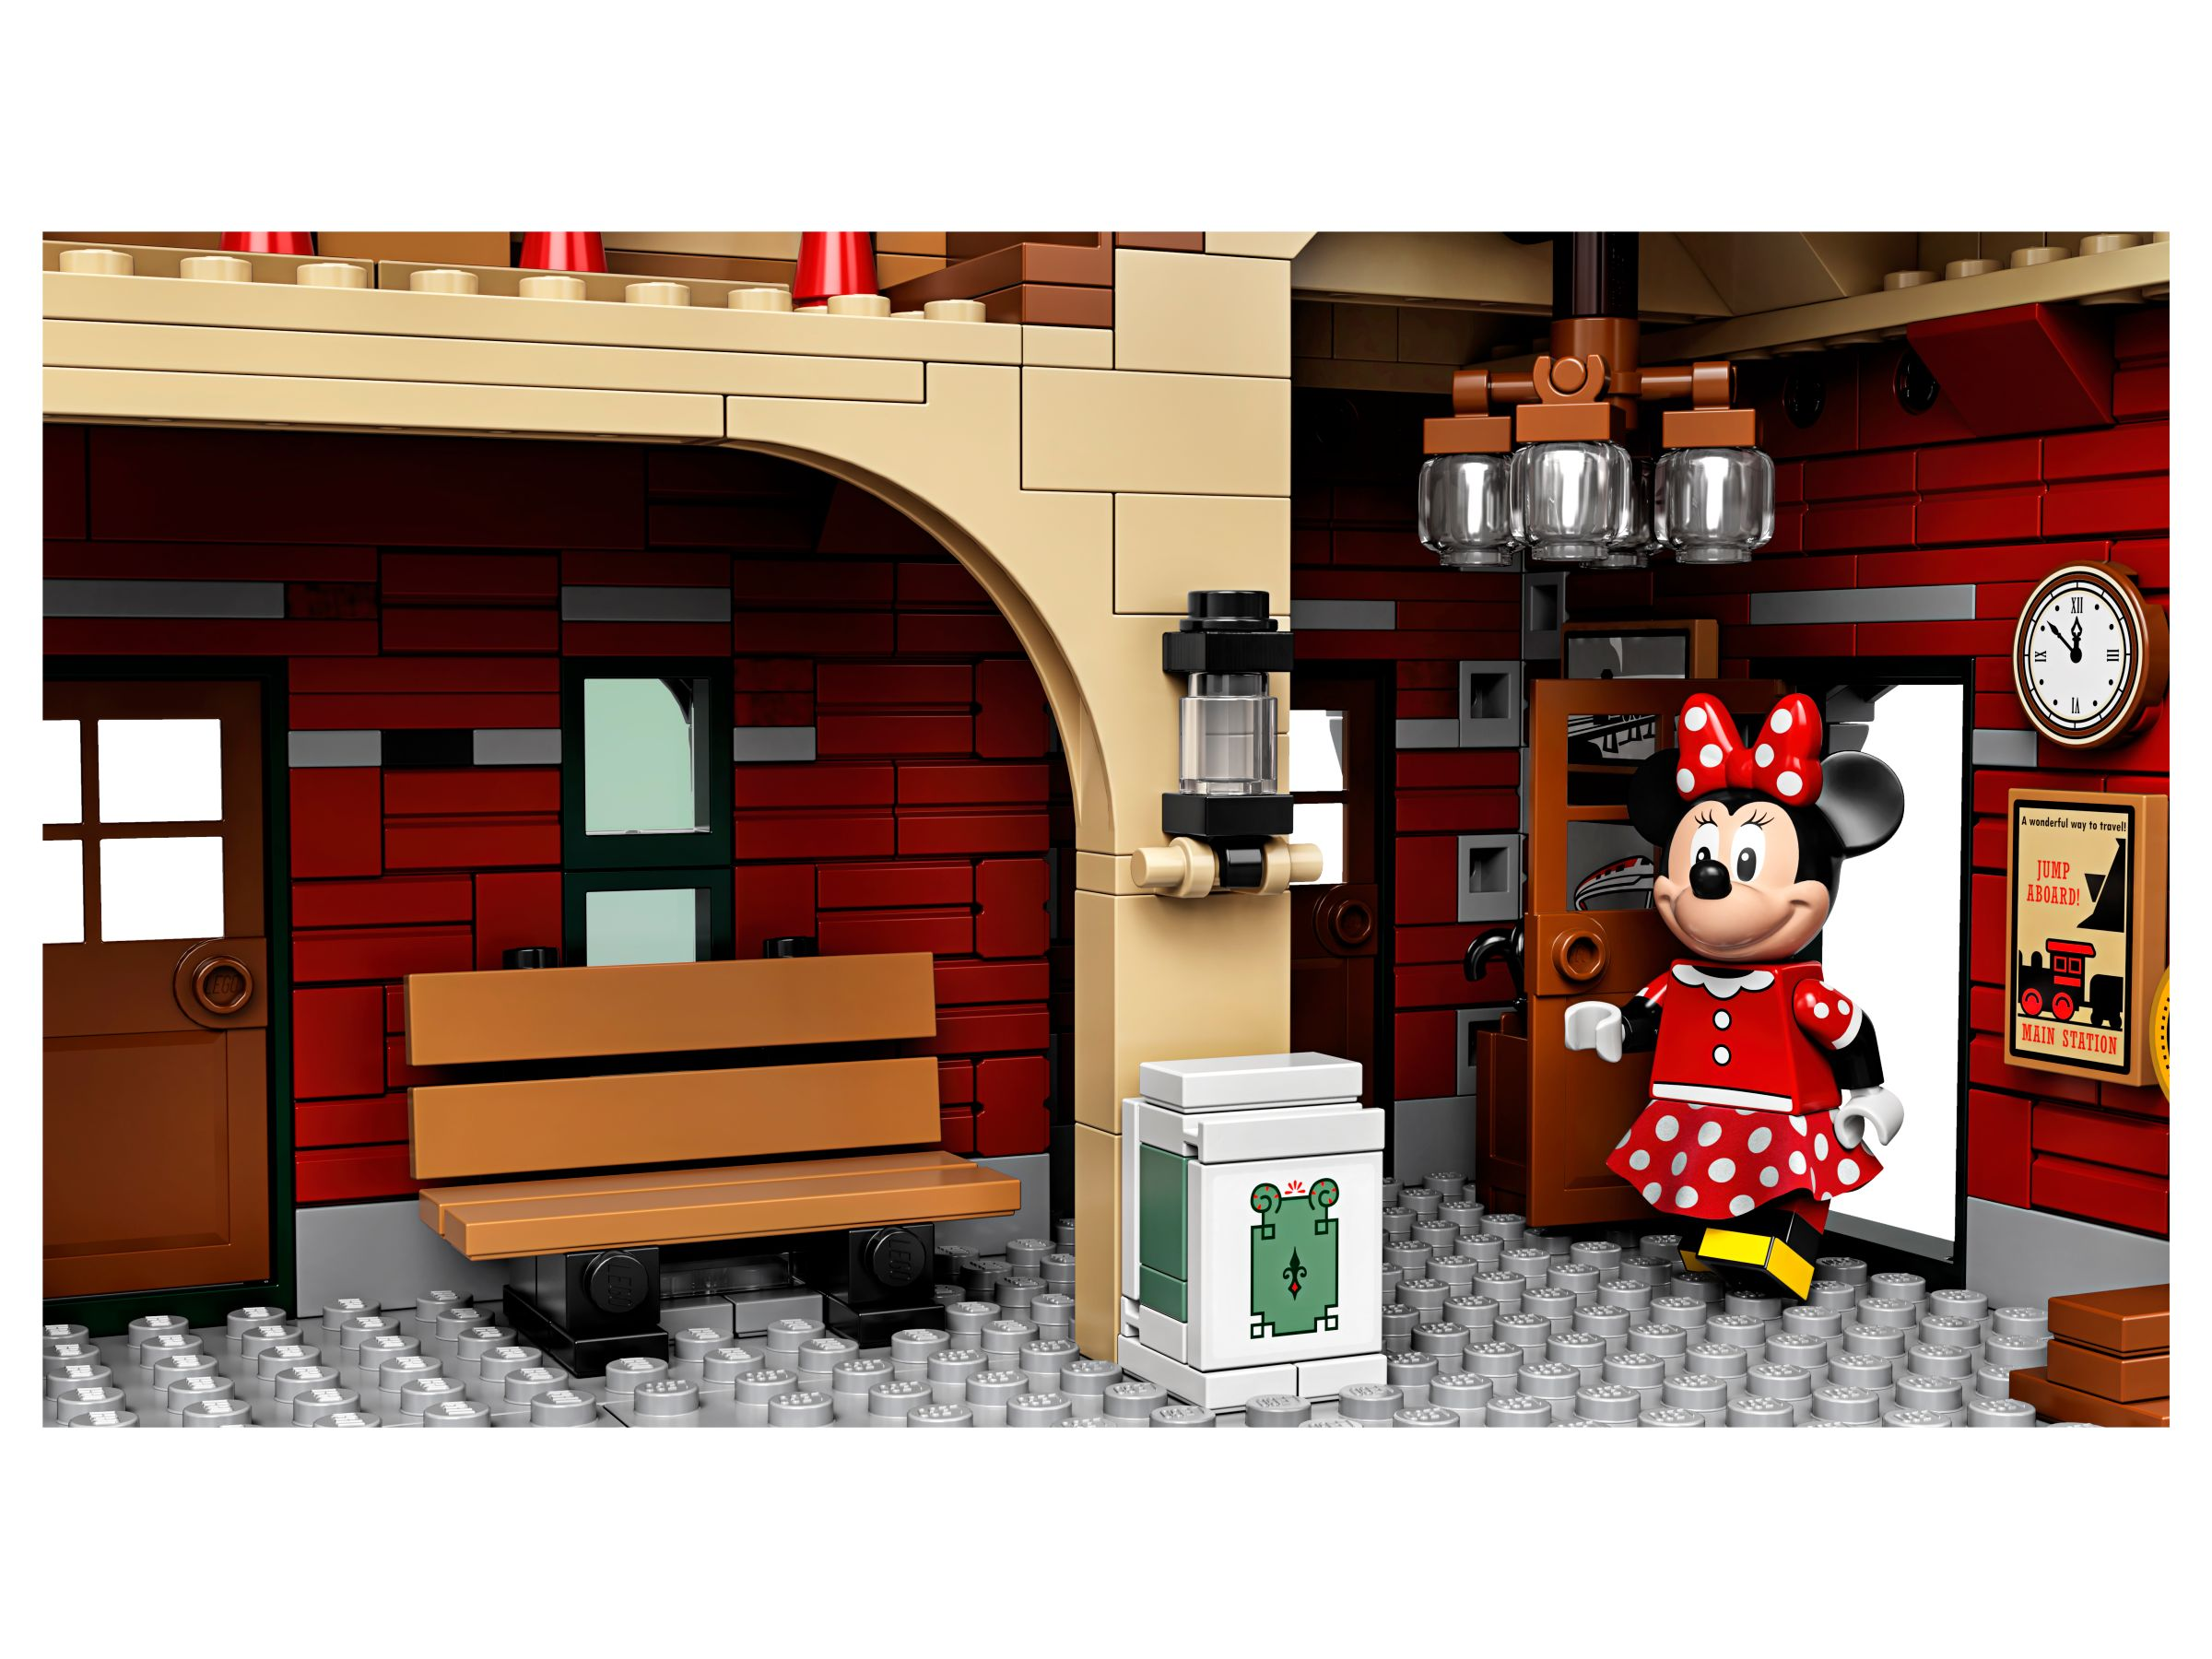 LEGO Advanced Models 71044 Disney Zug mit Bahnhof LEGO_71044_alt8.jpg